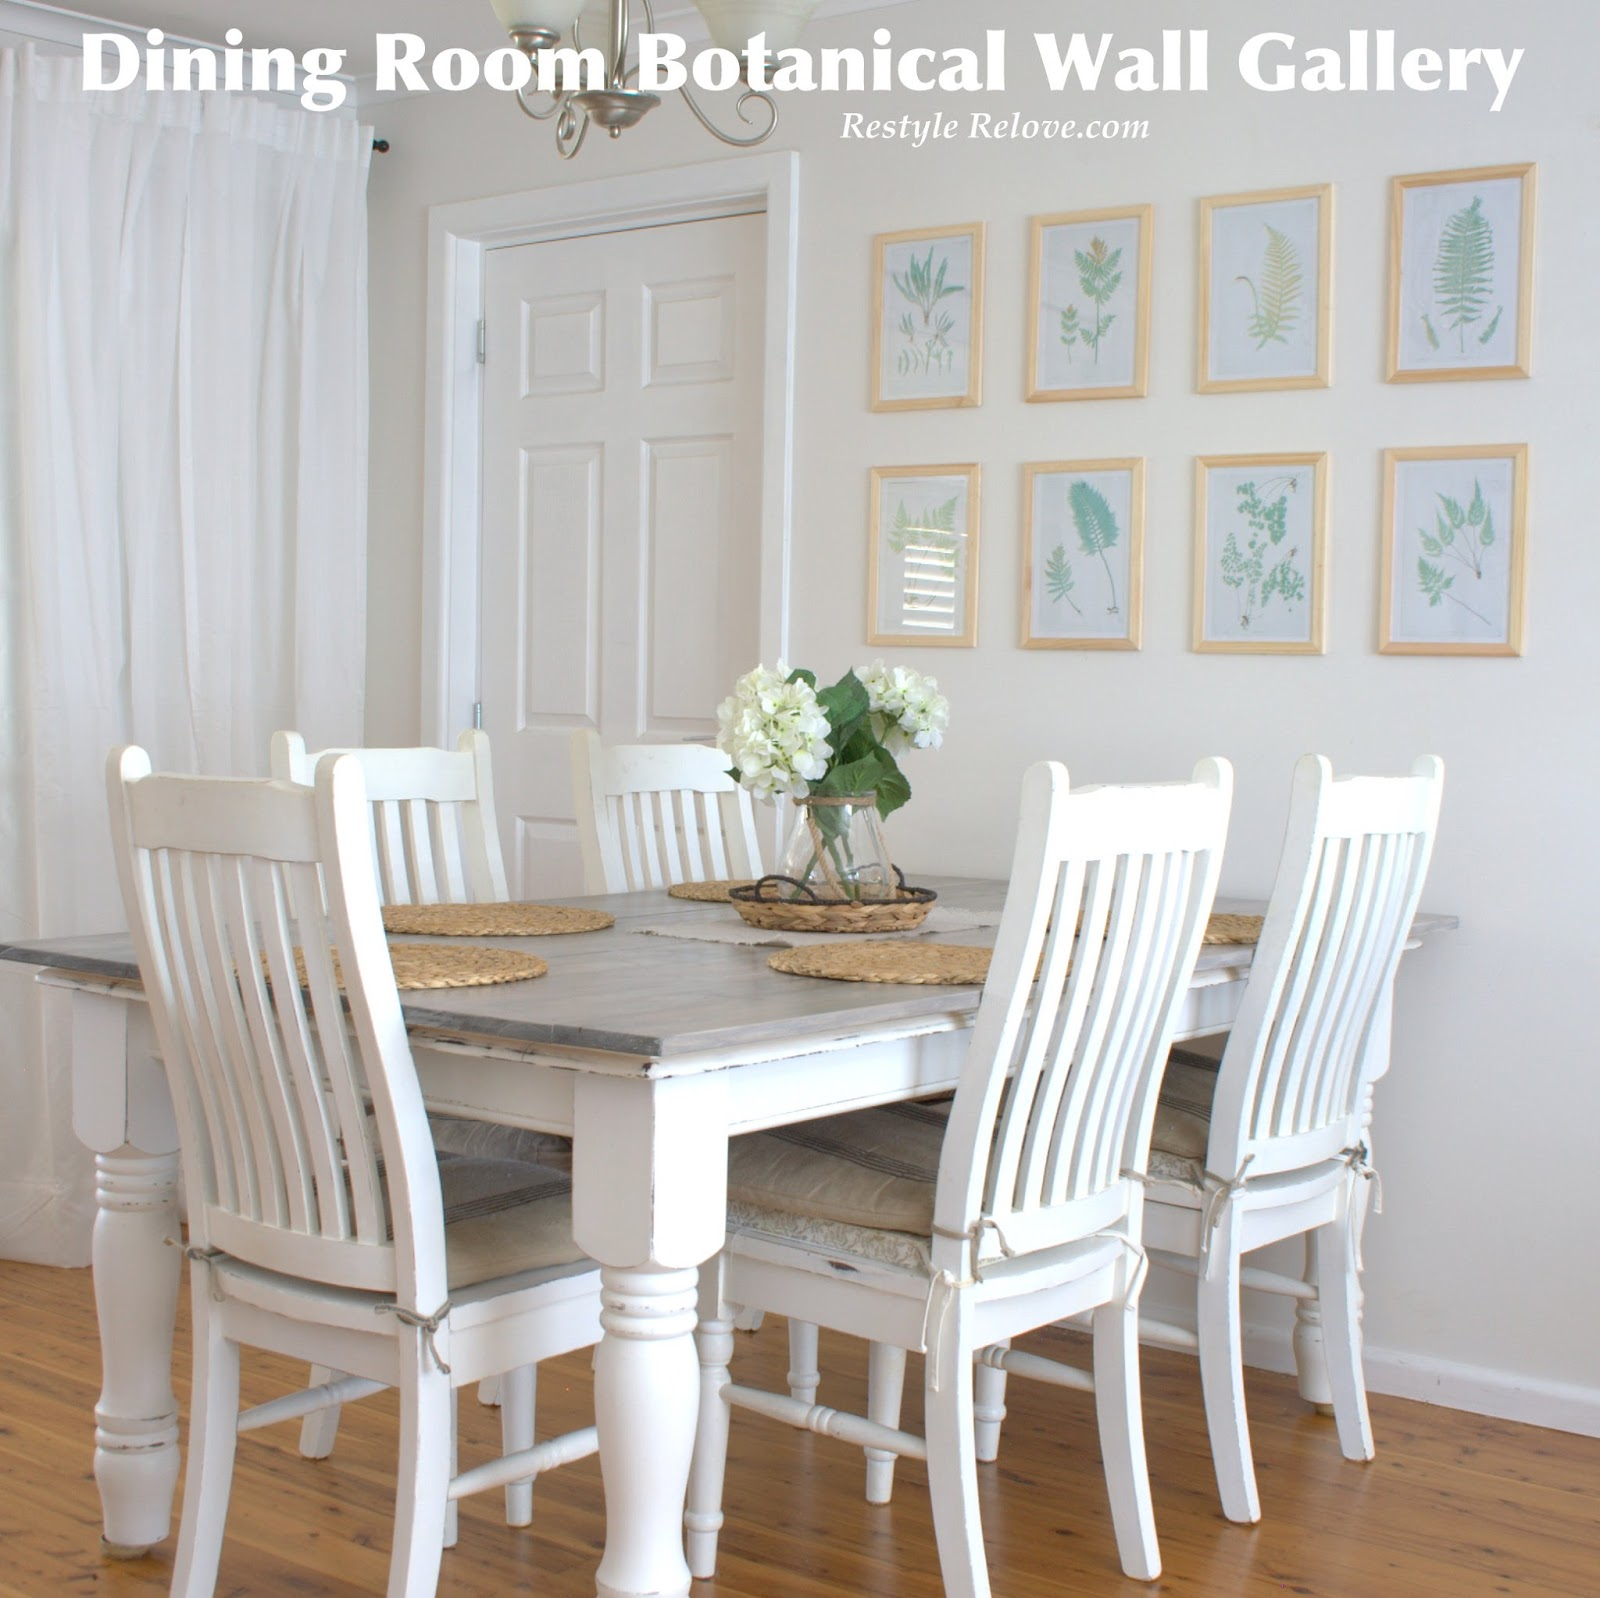 Dining room botanical wall gallery for Dining room gallery wall